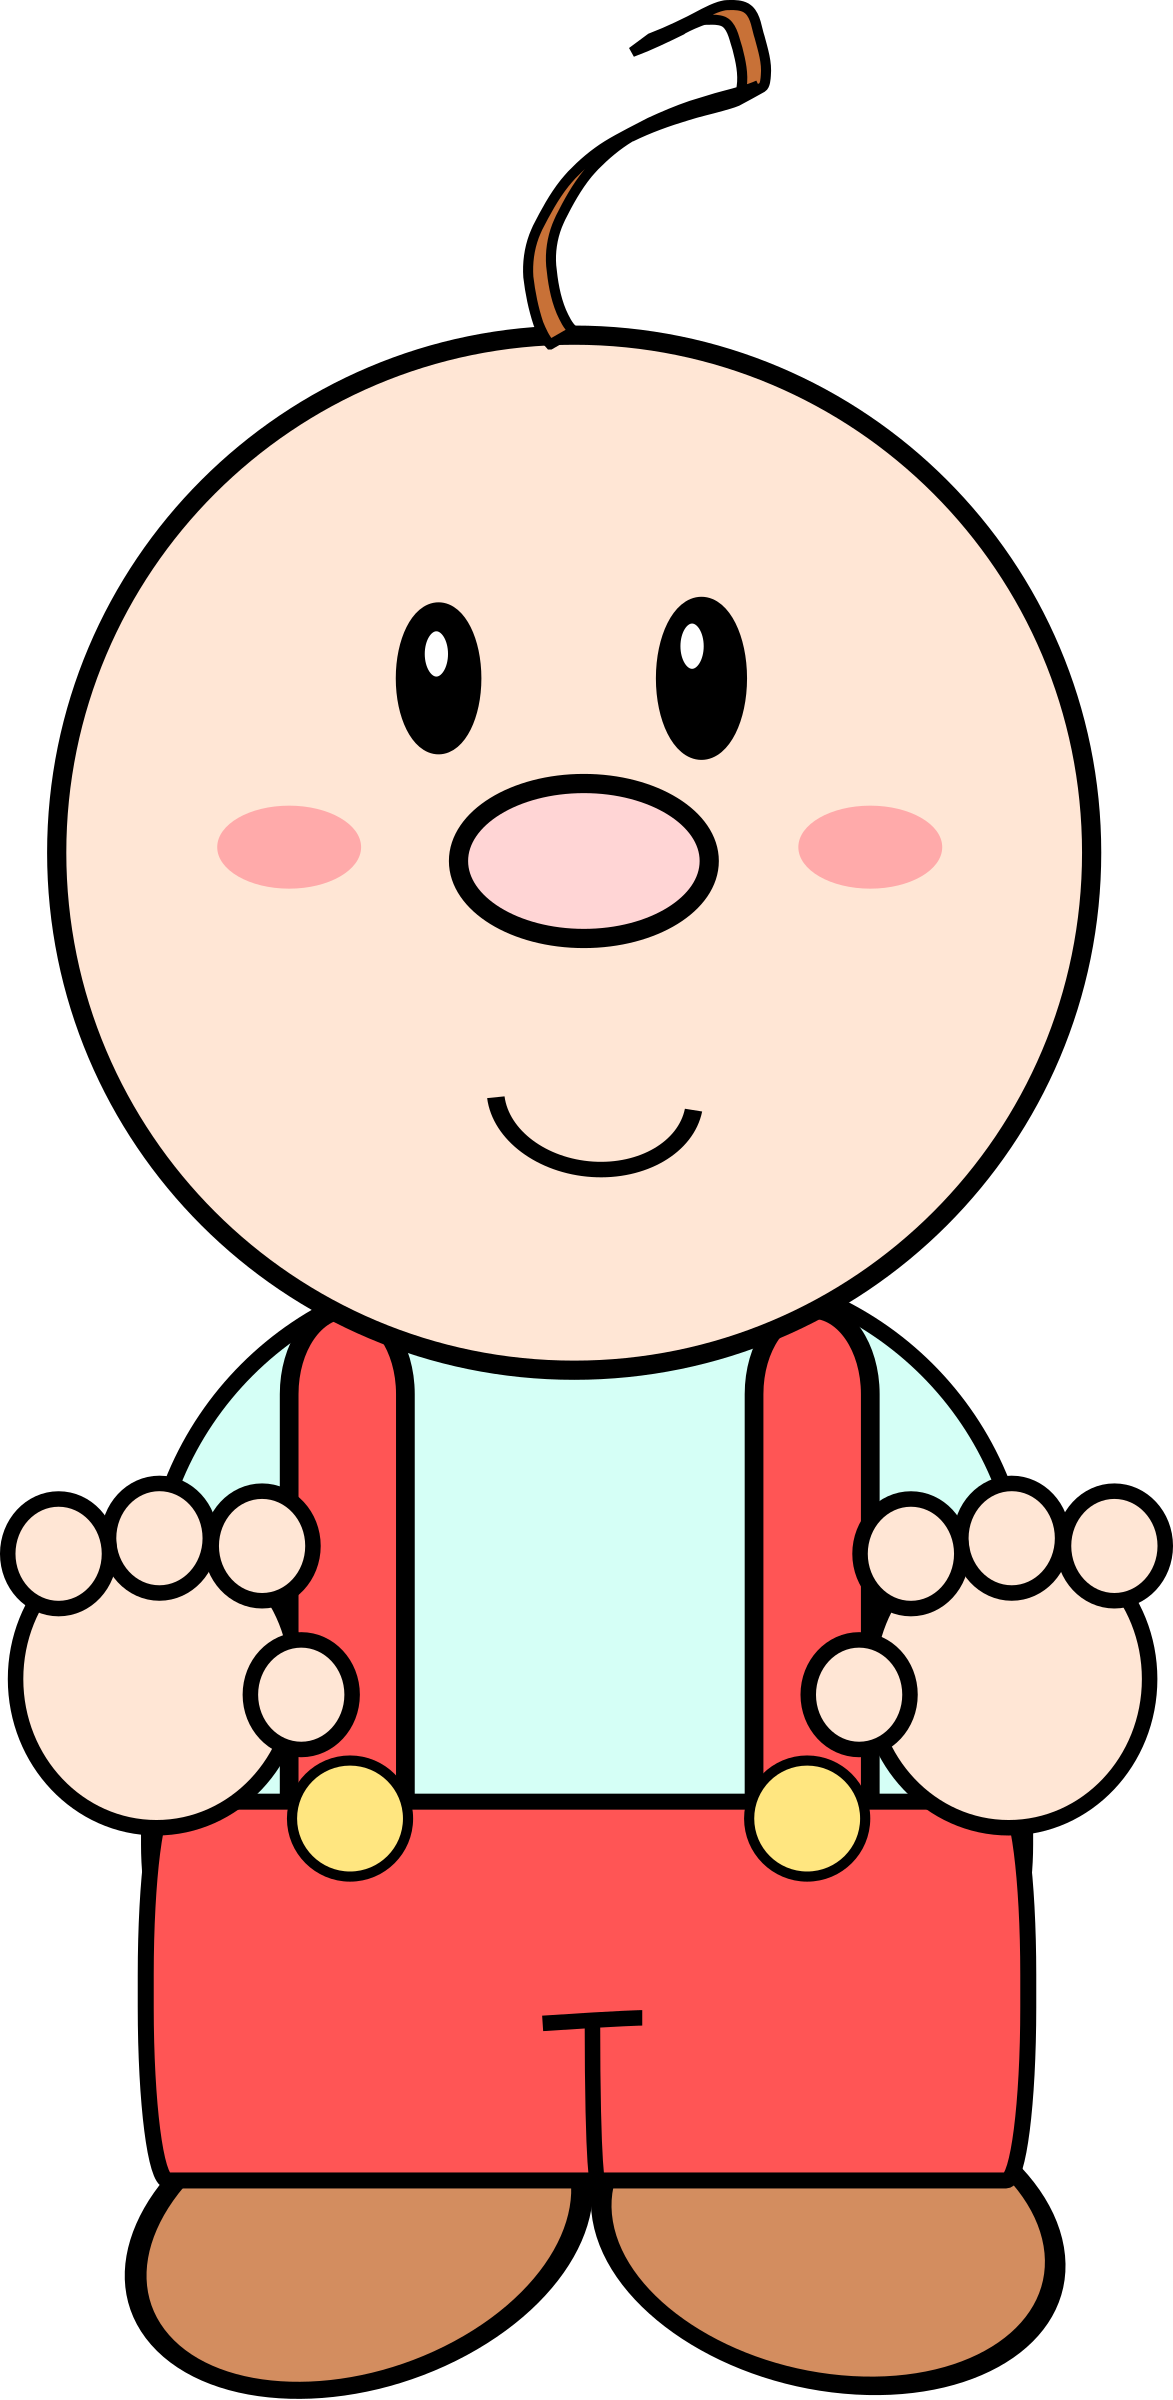 Clipart smile baby. Cartoon big image png